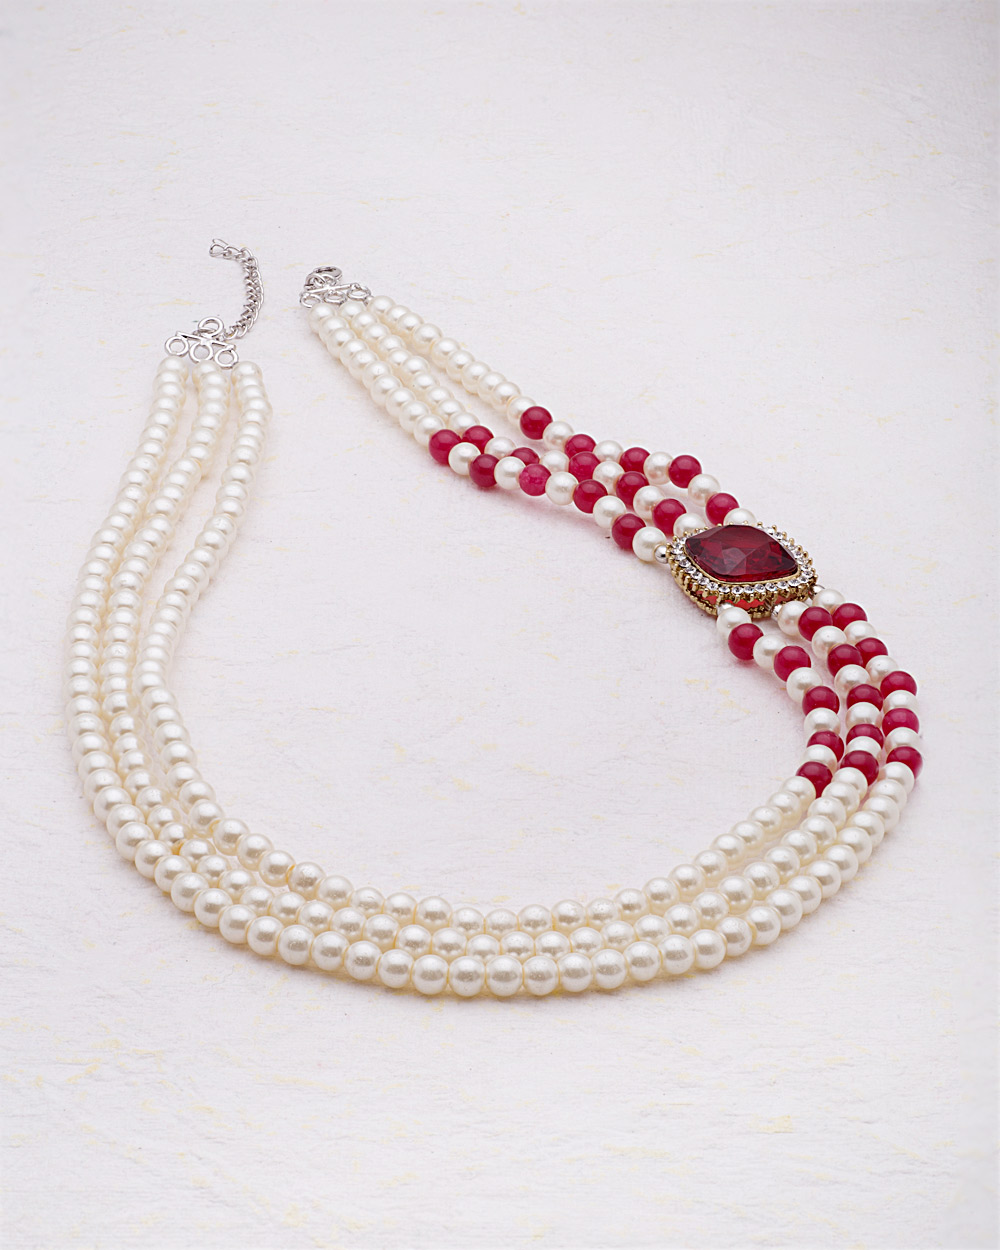 Buy side pendant pearl necklace from pearl galleria online india product dimension mozeypictures Choice Image